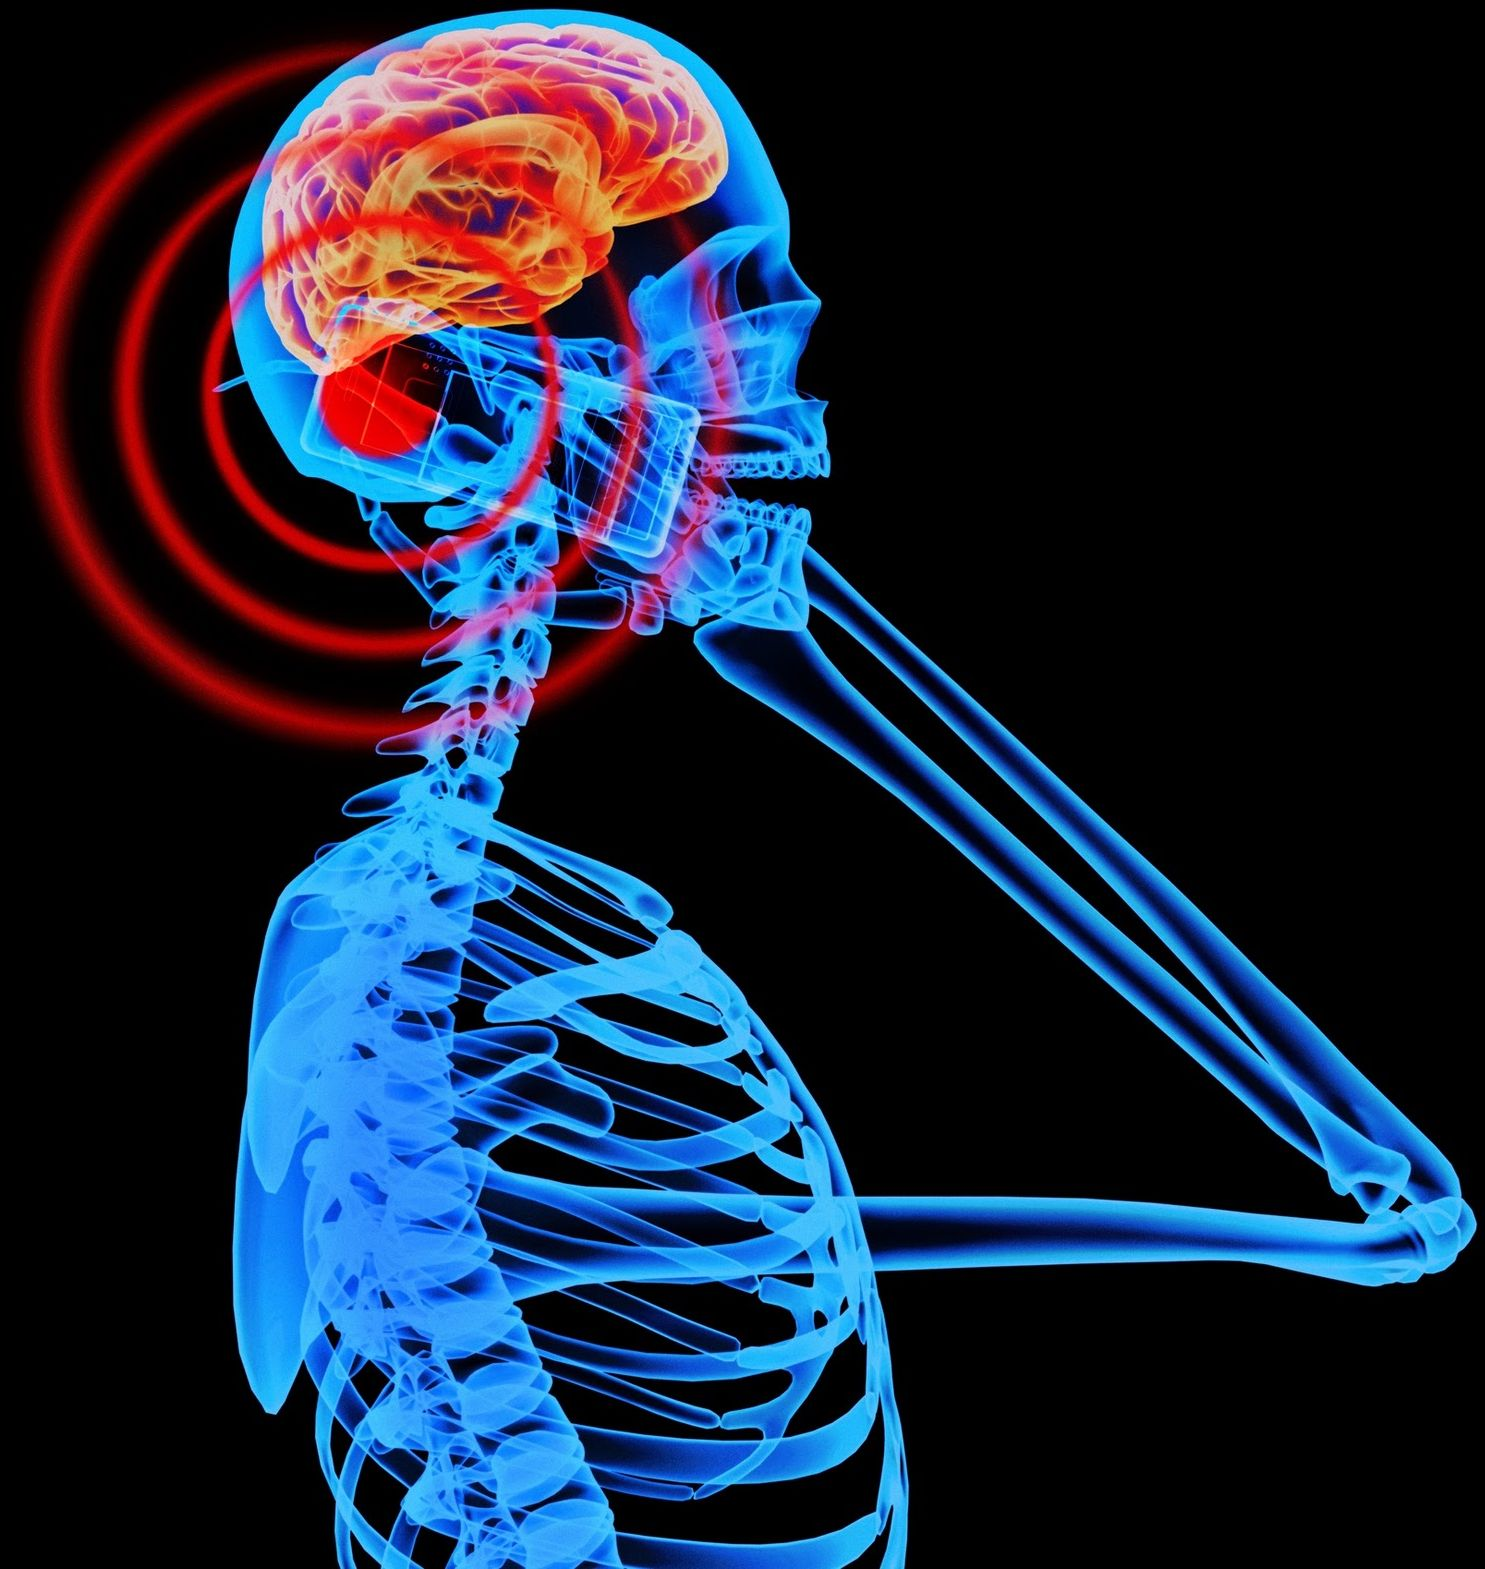 A real written research paper on cell phone brain tumor